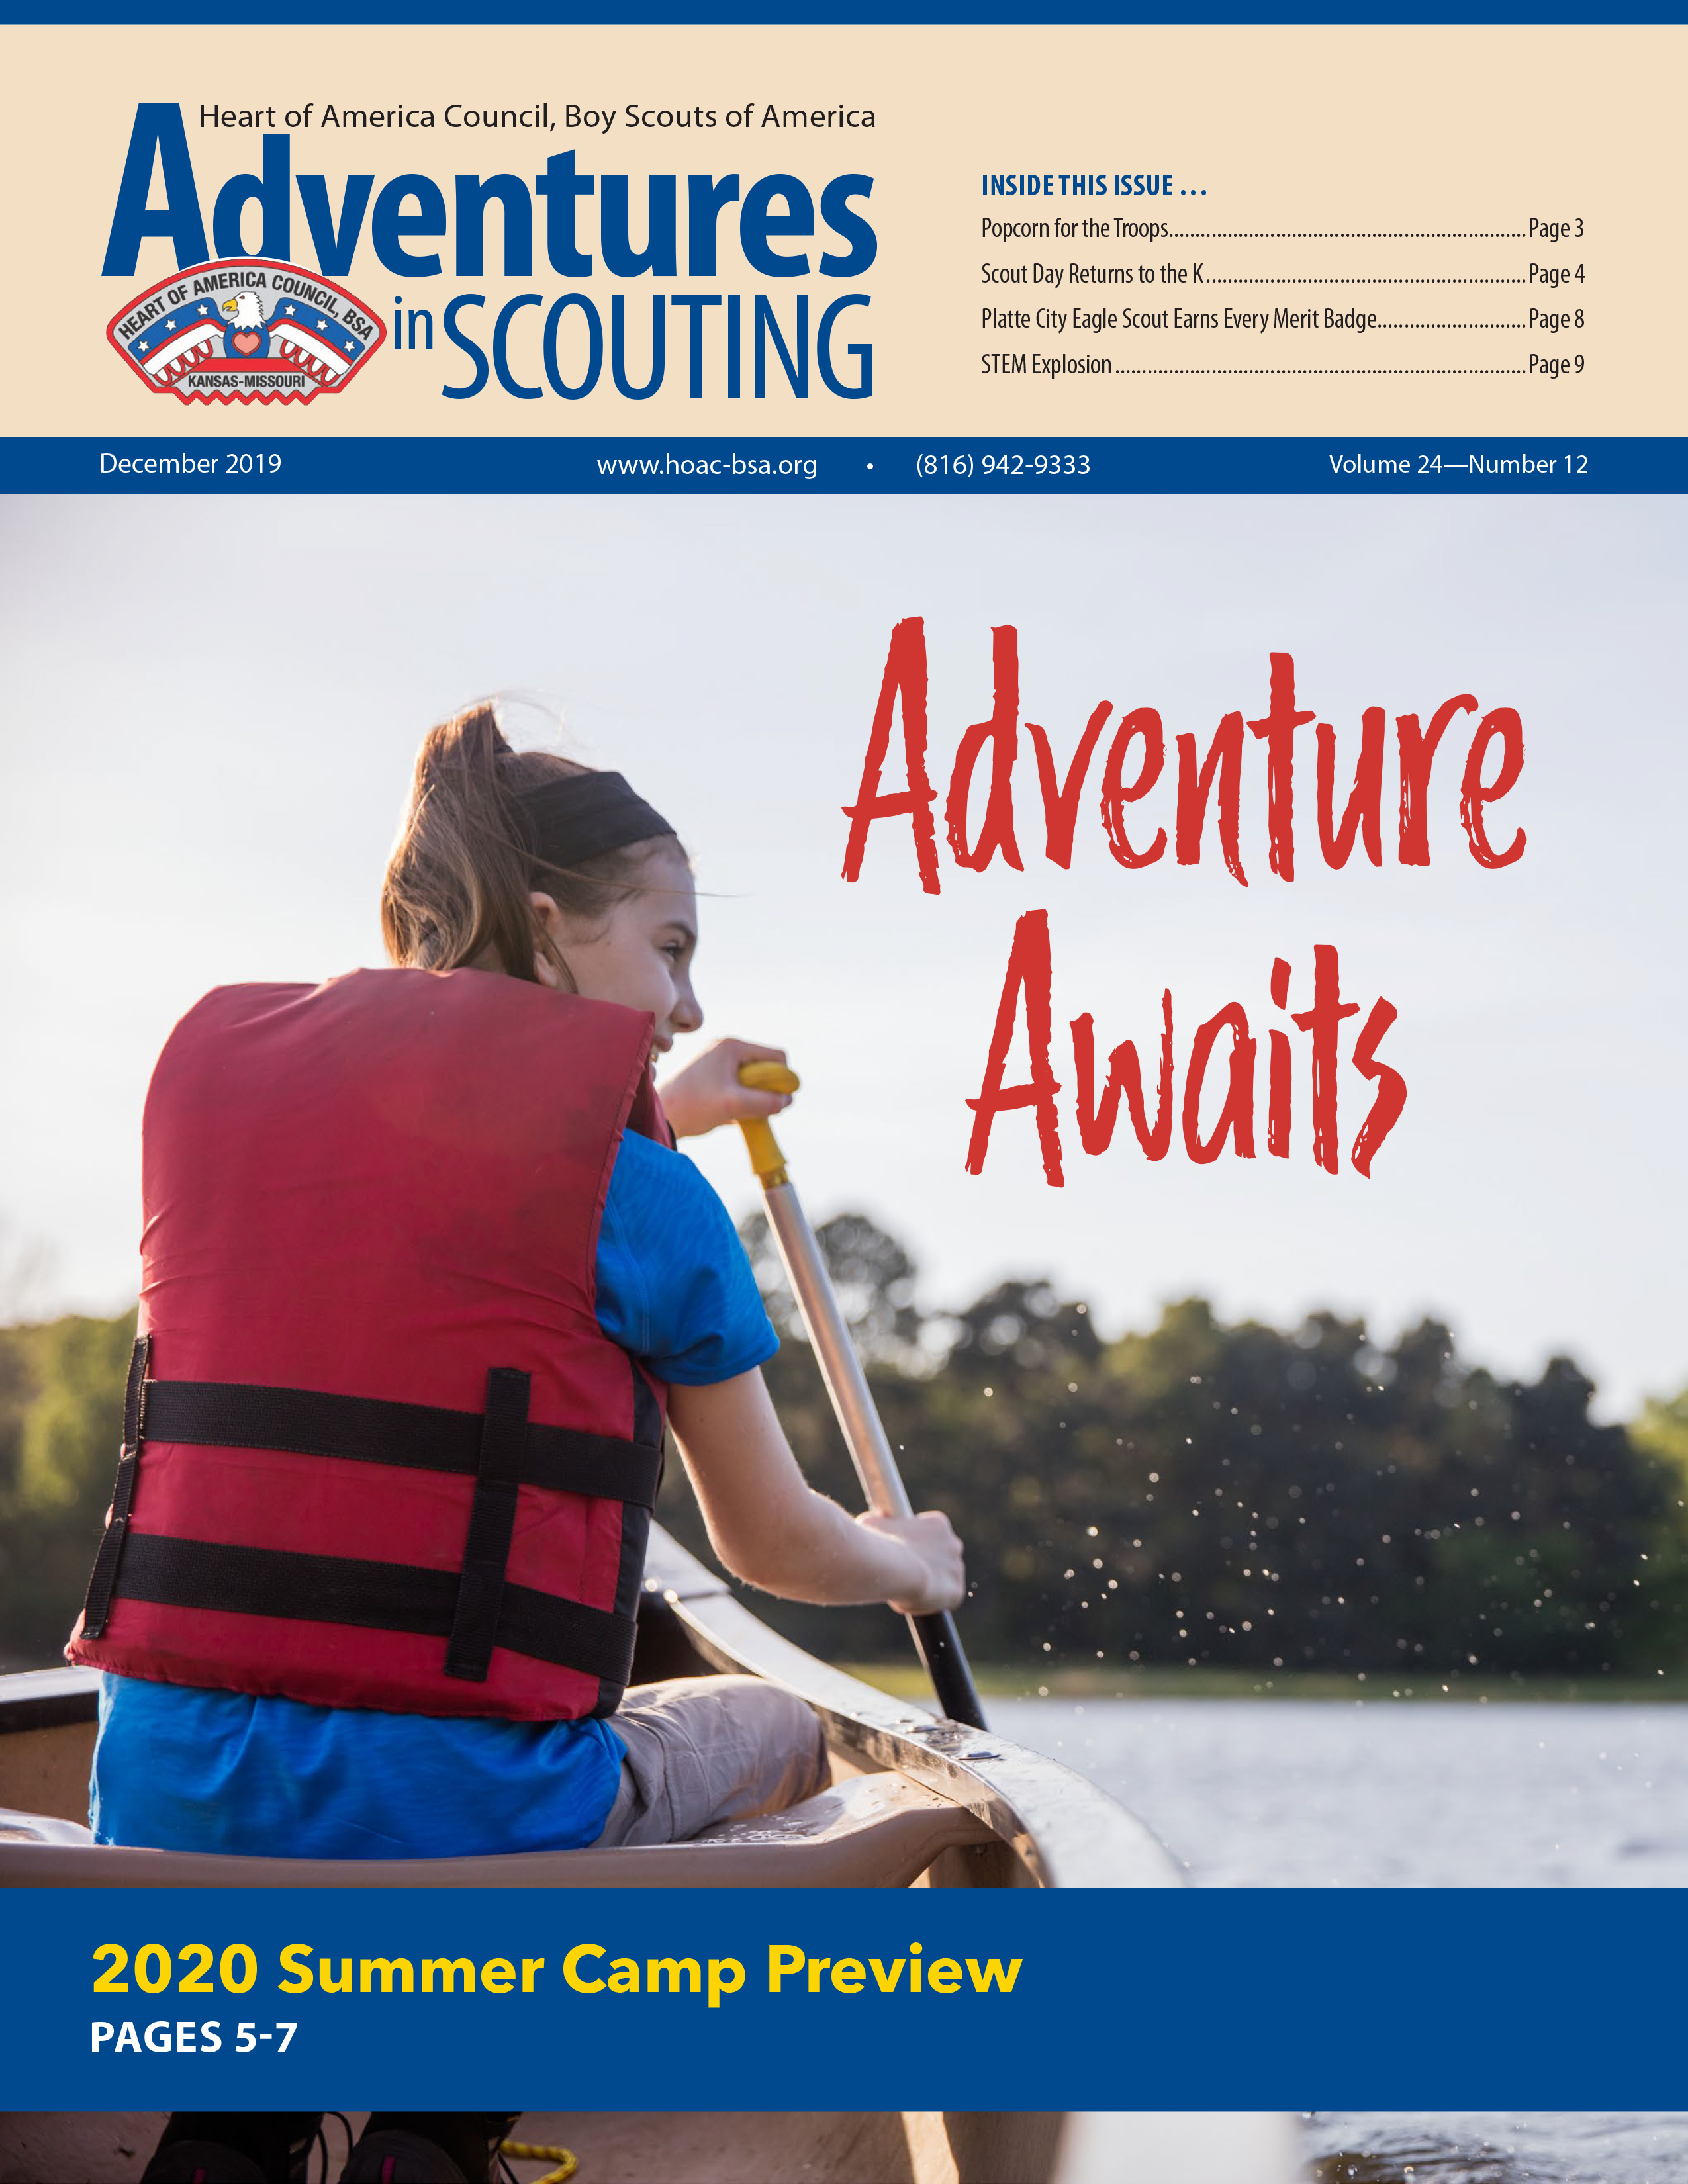 December Adventures in Scouting E-News